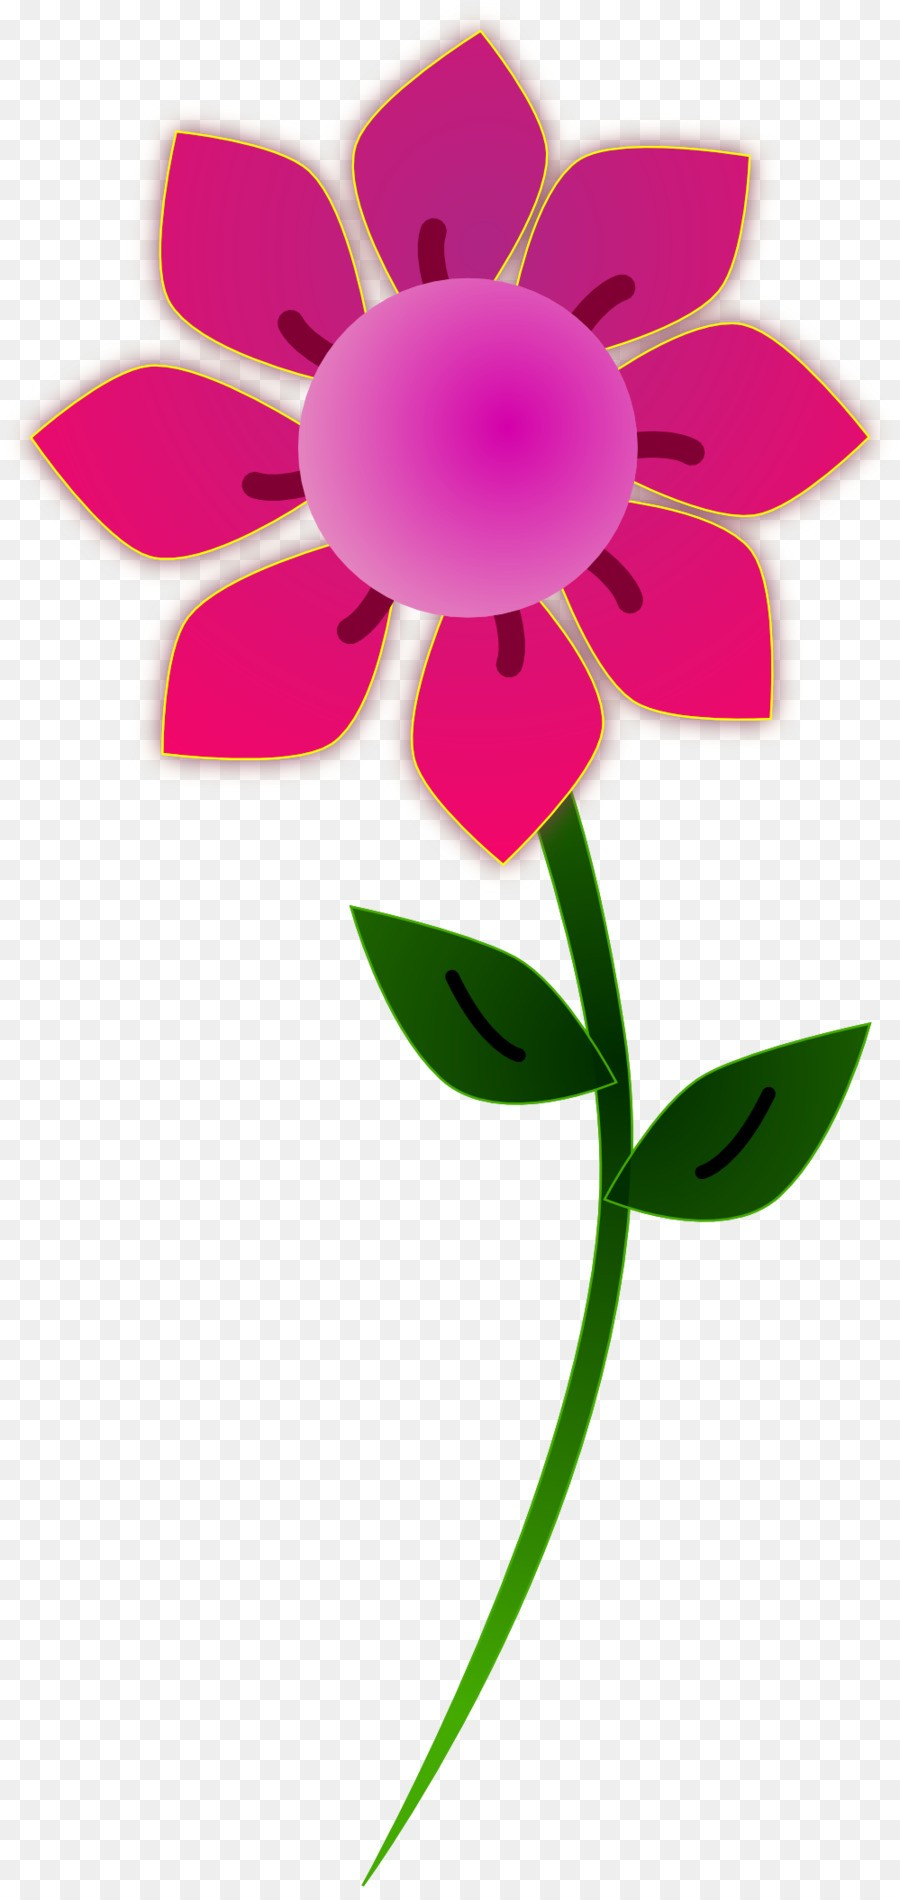 900x1900 Pink Lily Flower Png Clipart Best Web Cool